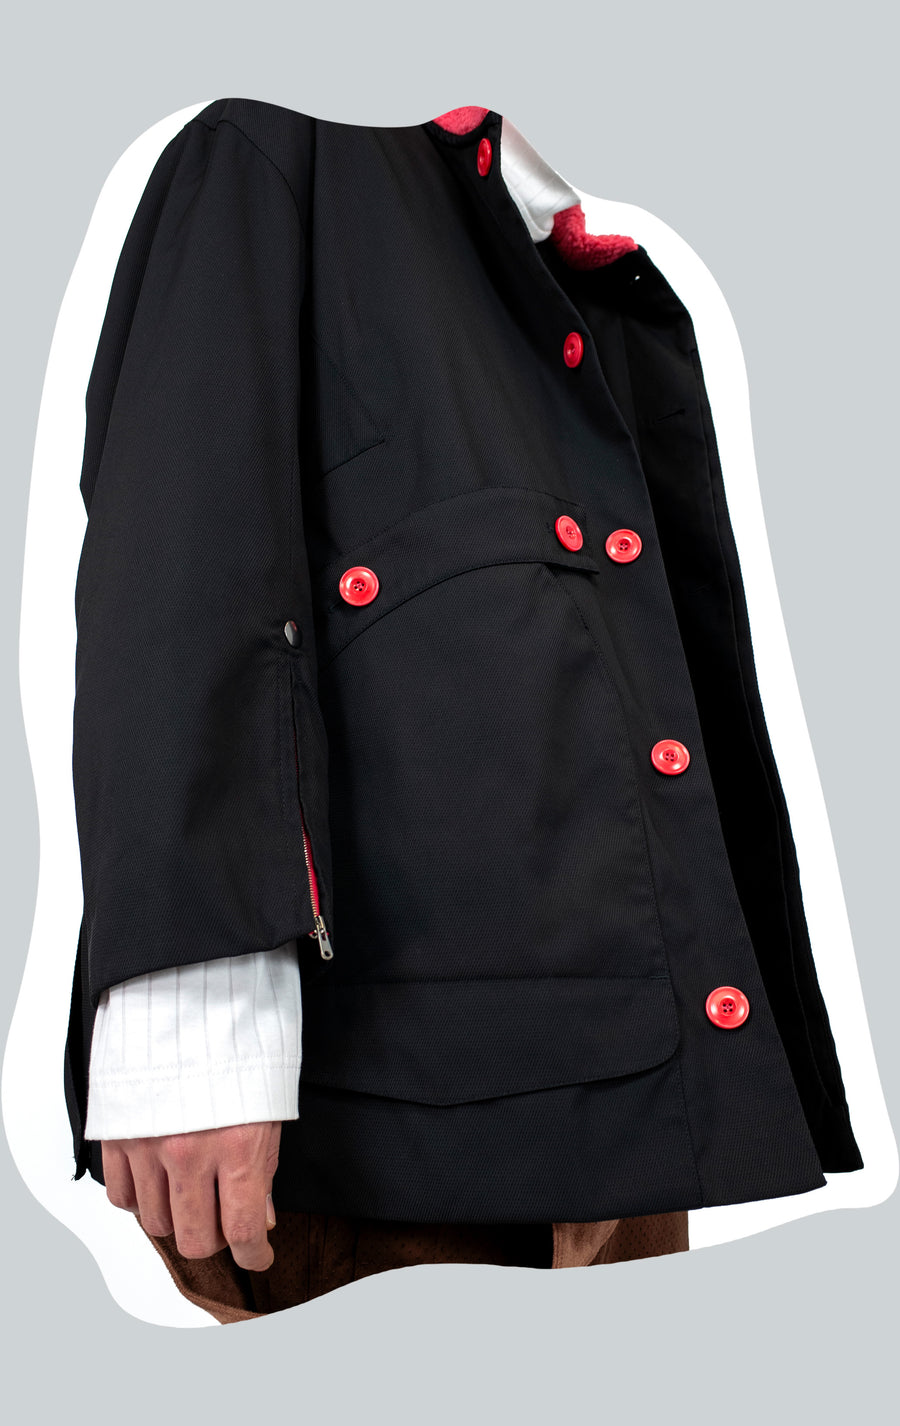 00092020 NASH HUNTING COAT BLACK CORAL